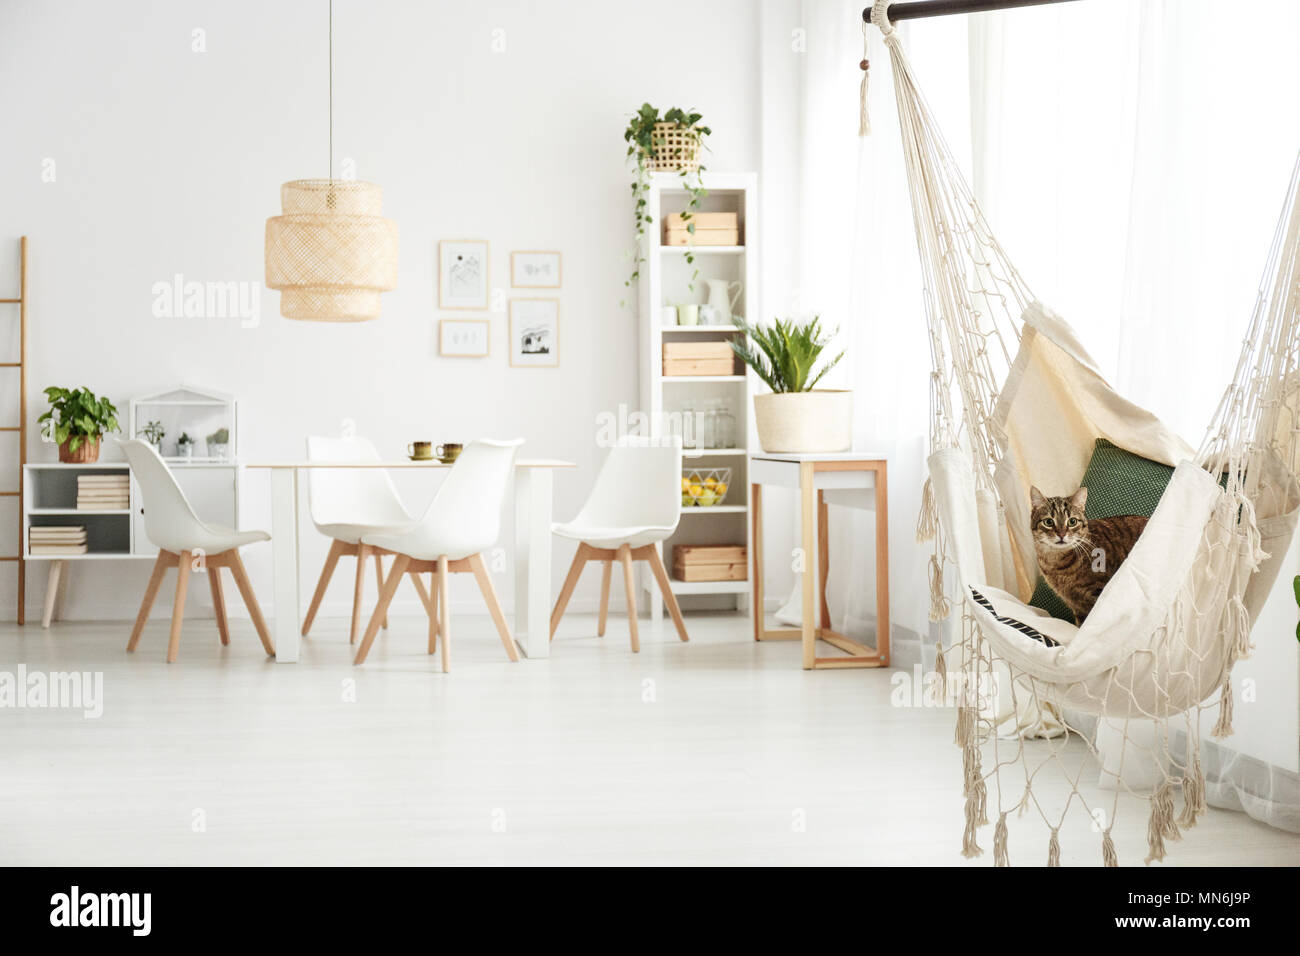 White Dining Room Interior With Table Chairs Lamp And Cat